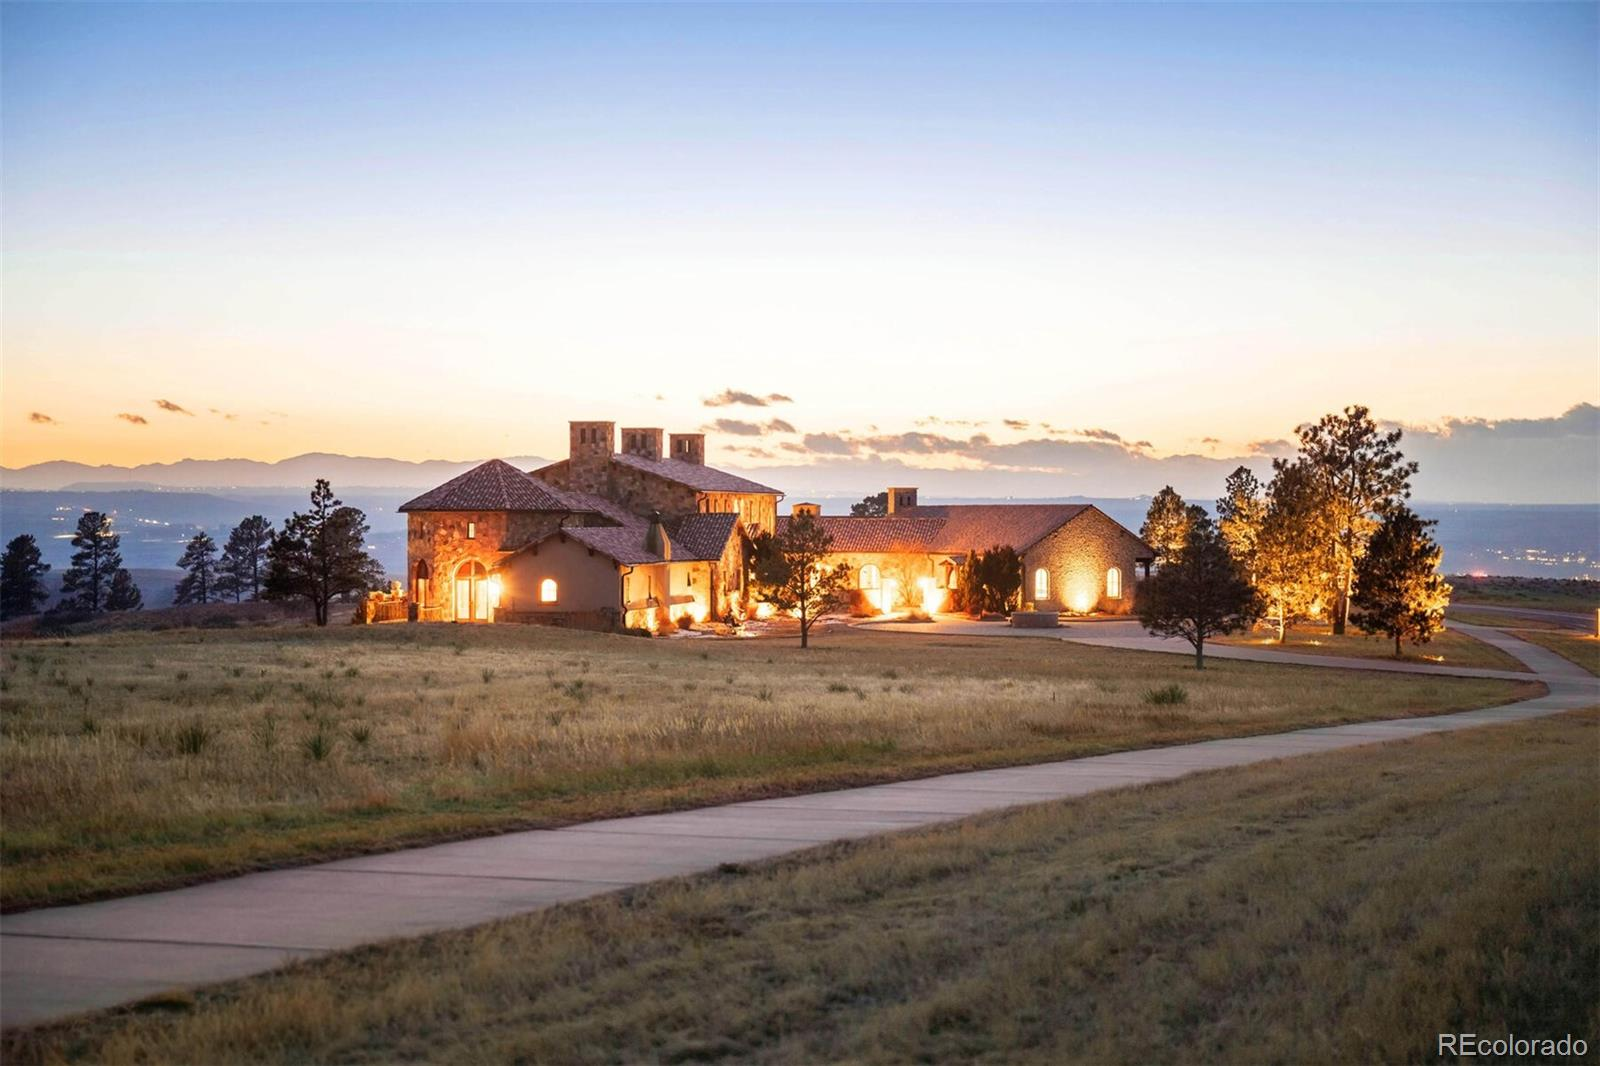 An opportunity to own one of the Signature properties in Colorado Golf Club, at over 16,000 finished square feet, with arguably the most European flair in the Club. The exterior finishes are reminiscent of the estates in Italy. The foyer of this grand estate is similar to entering a resort with art galleries, libraries and custom pieces that are easy to name drop when you realize you are seeing custom work installed by craftsman throughout the home. Names like architect, Don Ruggles, and custom details from John Richards, Guy Chaddick, +more all selected by the keen eye of Rob Osgard, Interior Designer with Howard Lorton who worked with the owner to make this dream come true. As one of the initial building sites in the Colorado Golf Club, this home boasts the views people dream of having in Colorado. From the Rocky Mountain National Park to Pike's Peak, these sunsets and elevated views are truly one of a kind. It includes an elevated balcony space, with outdoor fireplace, hot tub, entertainment area, kitchenette and views that truly stretch the imagination.  Keep in mind, the Colorado Golf Club is a favorite warm up for PGA members, and you are overlooking the 1st Fairway. The floor plan is perfectly laid out with 6 bedrooms and 10 bathrooms, two custom designed offices, an oversized 4 car garage, an area for multi-generational living and a guest house with 2 bedrooms, beautifully appointed kitchen and living room/dining room, this estate really has provided for all the needs of the modern consumer.  Every room has something special. And, for those who love to entertain - the courtyards, patios, balconies and fountains make having friends and family over a true joy. The heated courtyard in traditional Tuscan style would be the perfect setting for those summer wine parties – just add your café lighting. A walk-out basement party room with a professional sized marble and mahogany bar, two fireplaces overlooking the golf course and views of Pikes Peak.